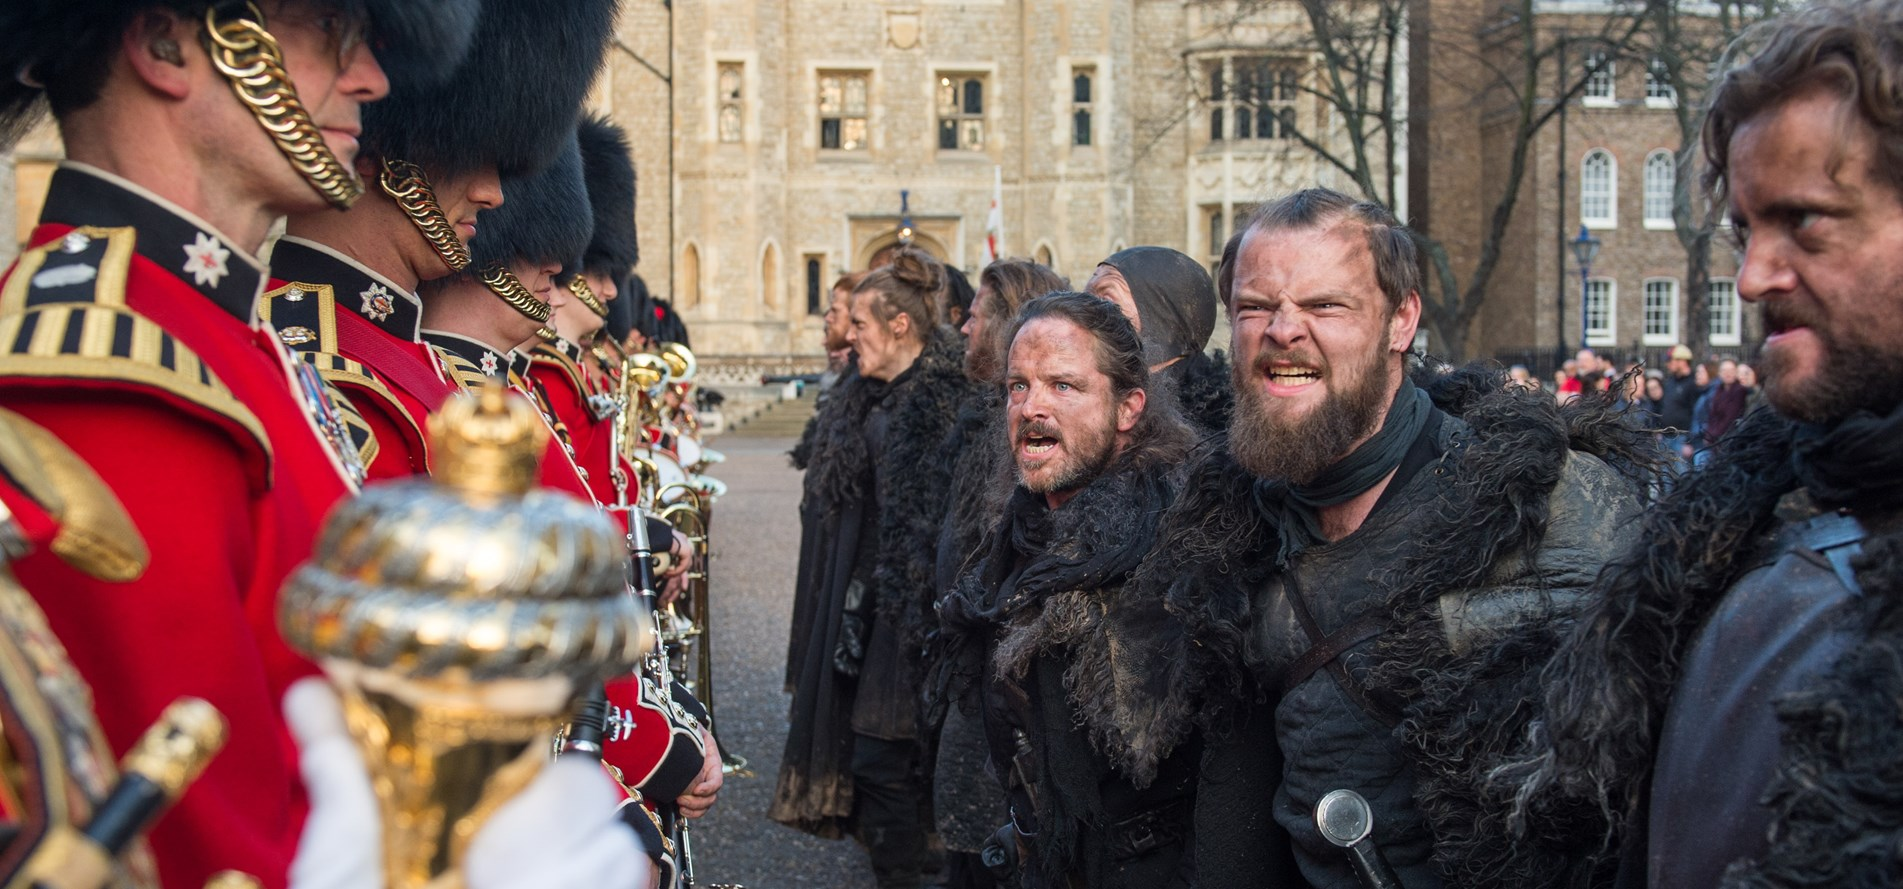 APOLOND-2019-033-0048-Game Of Thrones Tower Of London-PR.JPG